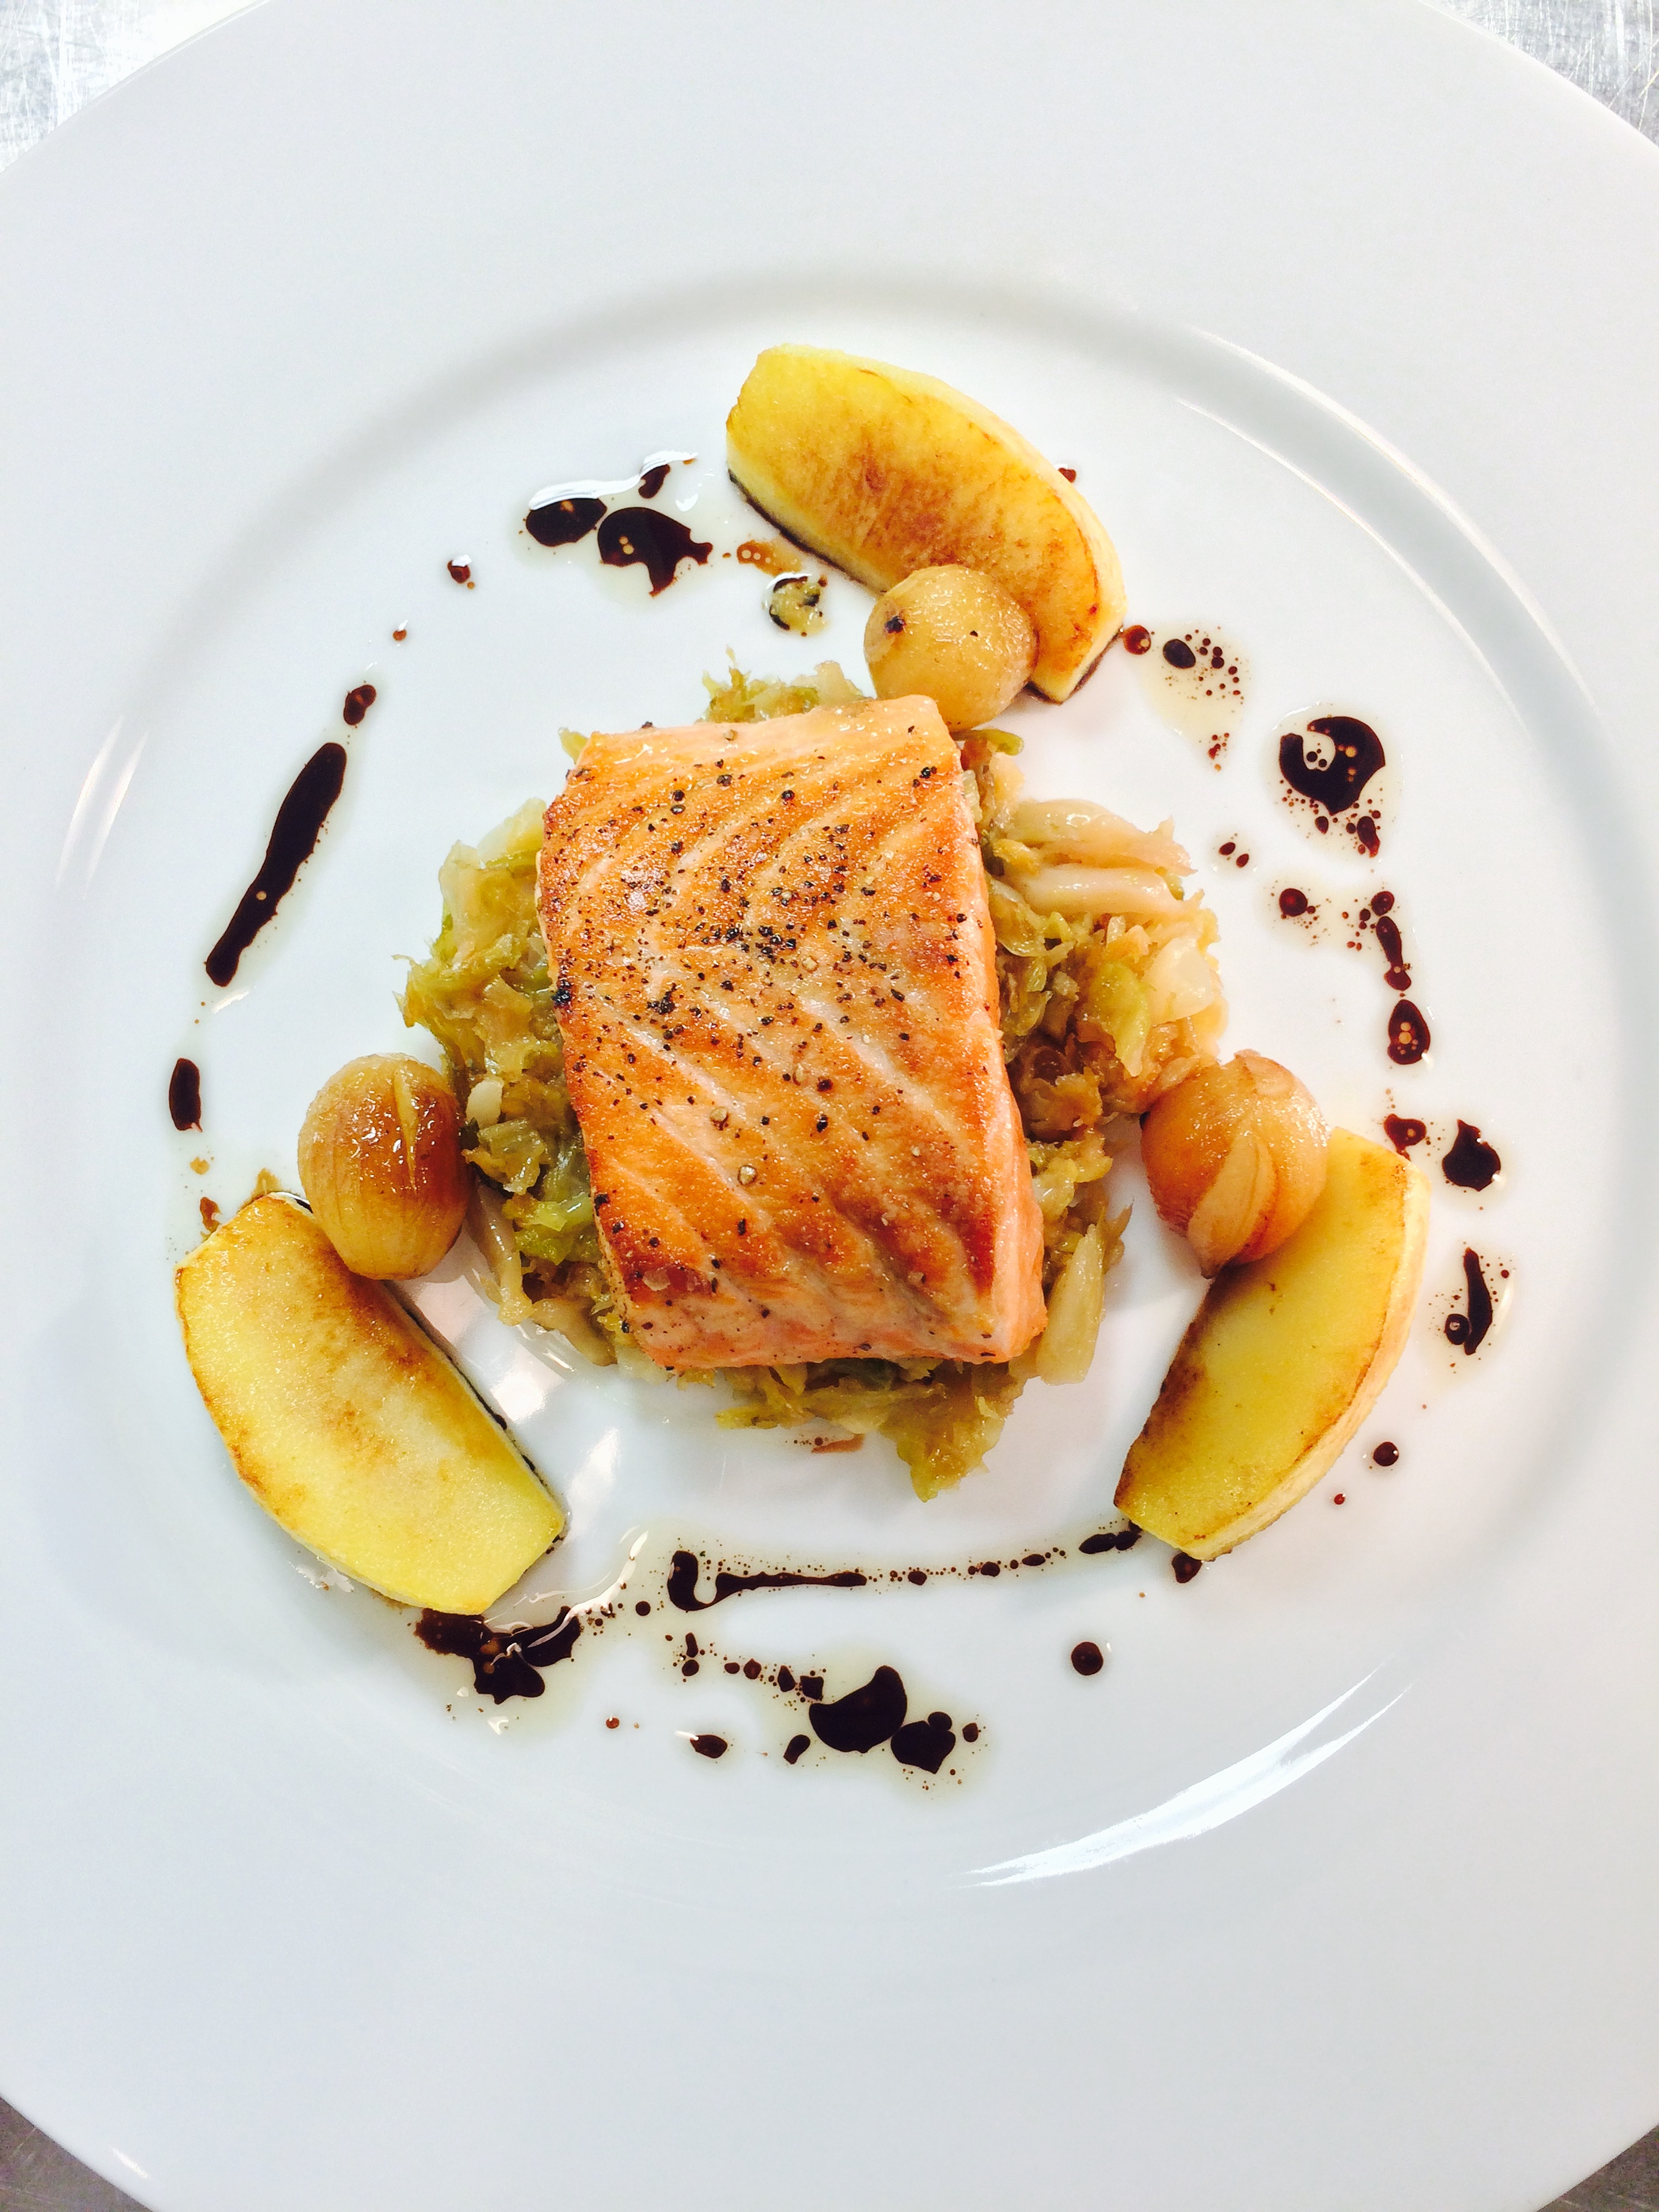 Salmon cabbage with apple  | Courtesy of Chef Sebastien Rondier